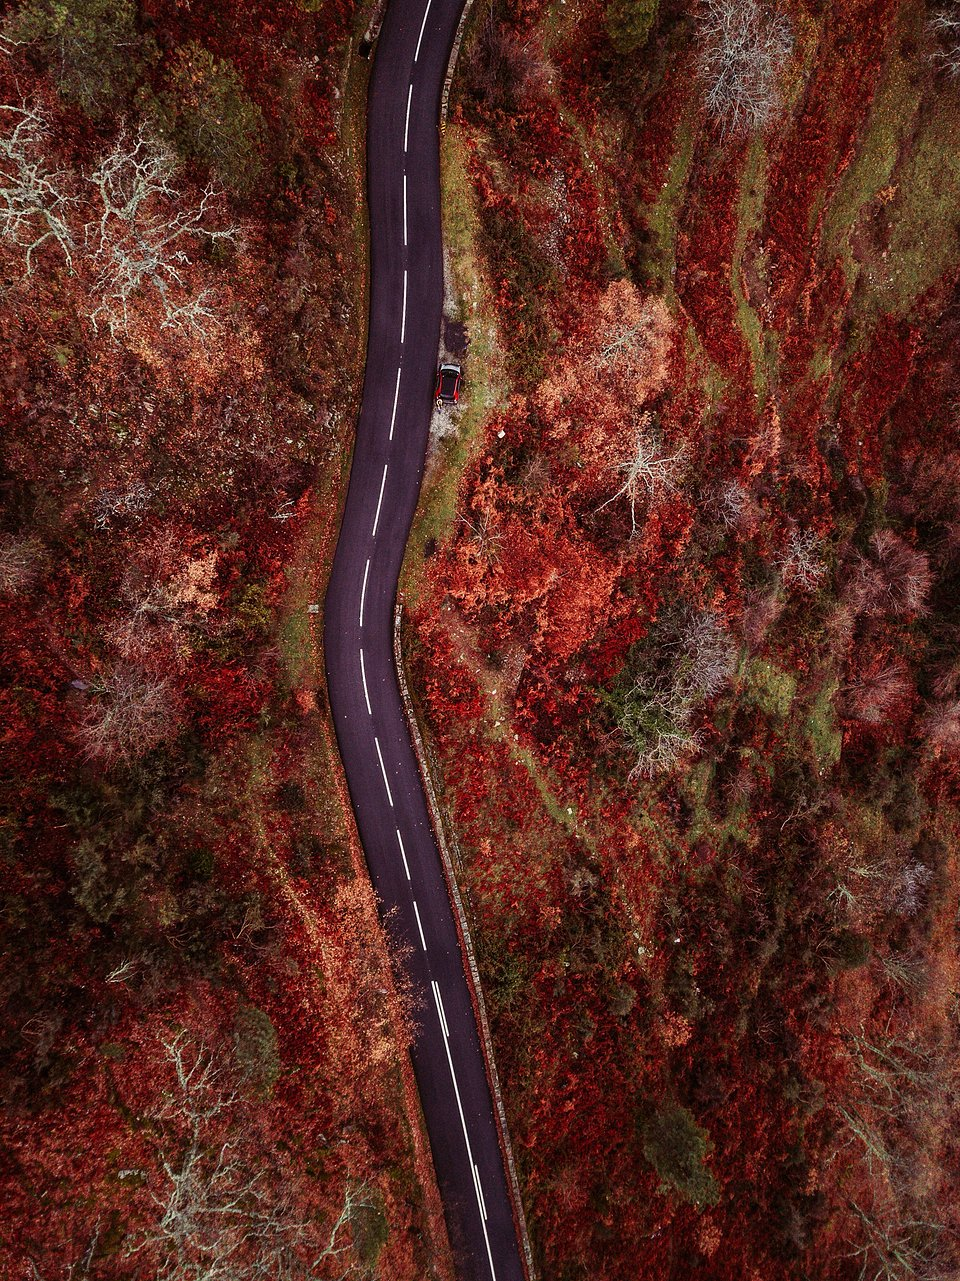 Autumn vibes in this aerial shot of a country road in Portugal  (Ksenia Zaiets/AGORA images)